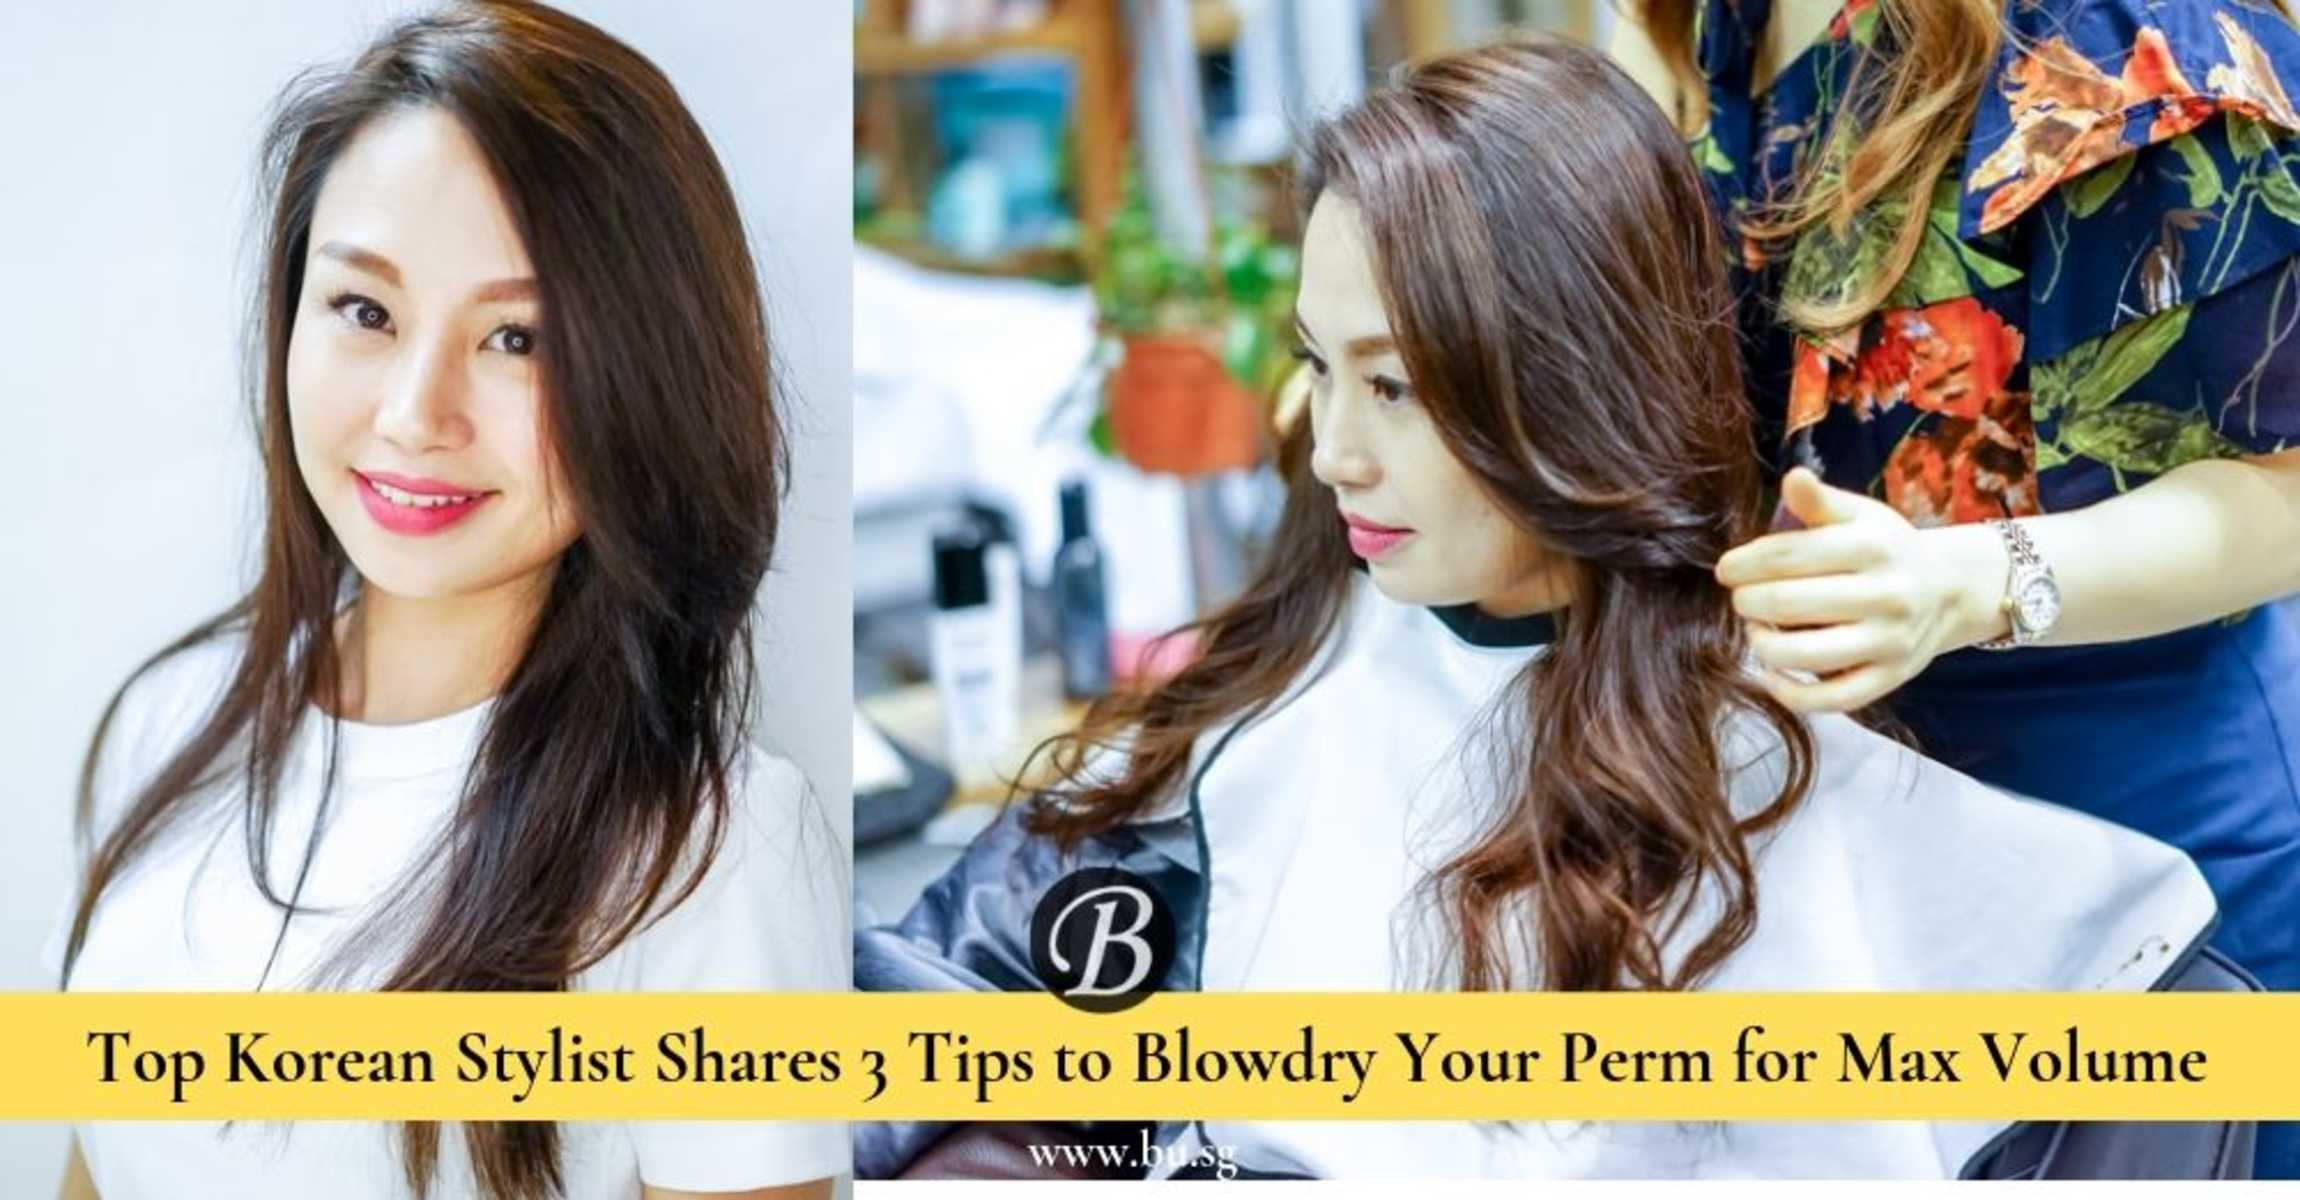 Top Korean Stylist Shares 3 Tips On How You Should Blowdry Your Perm For Maximum Volume